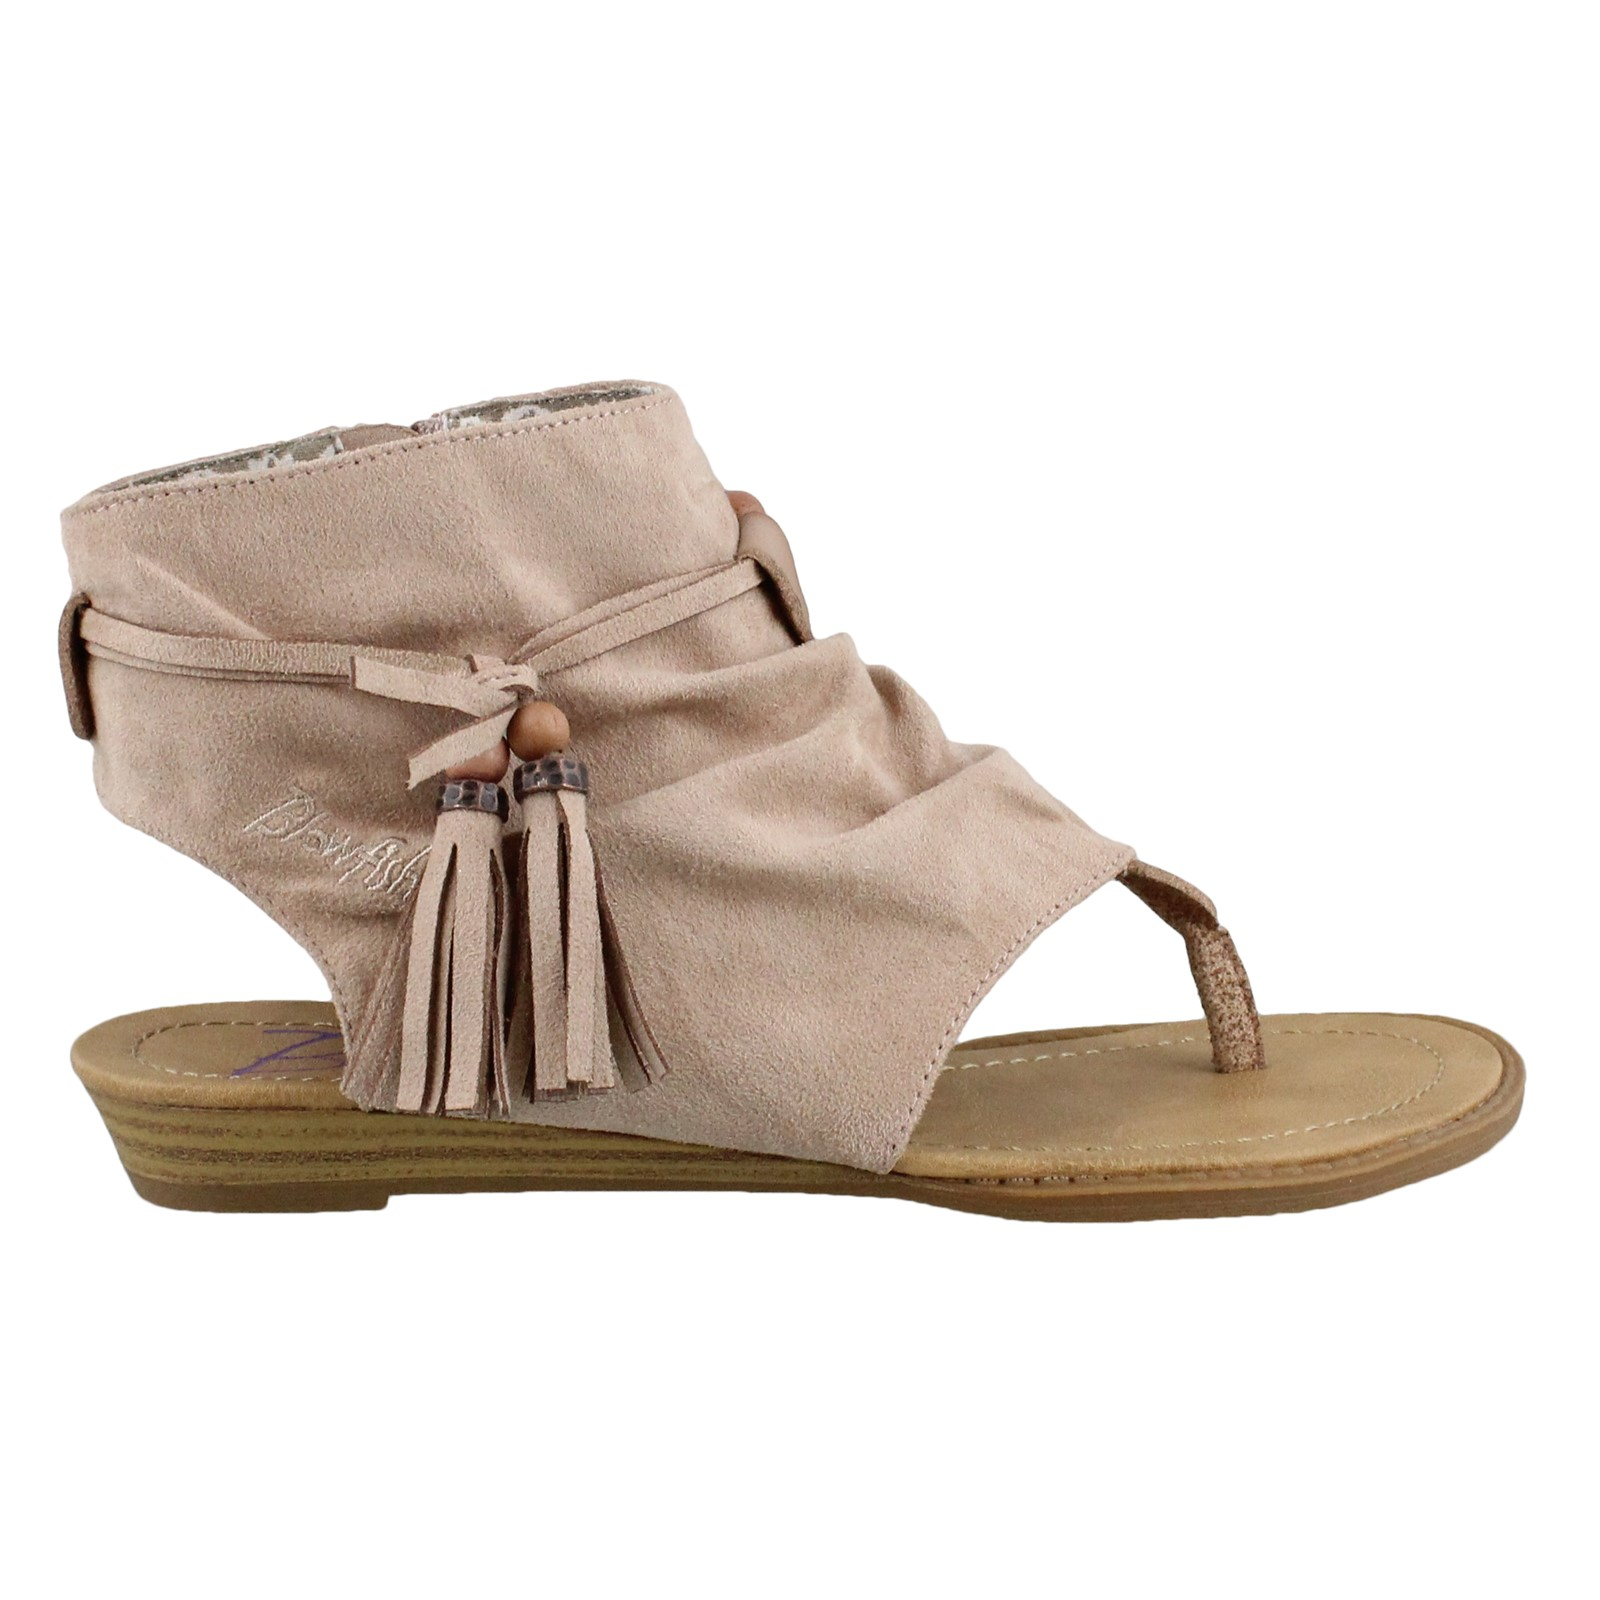 Women's Blowfish, Brueke Sandals